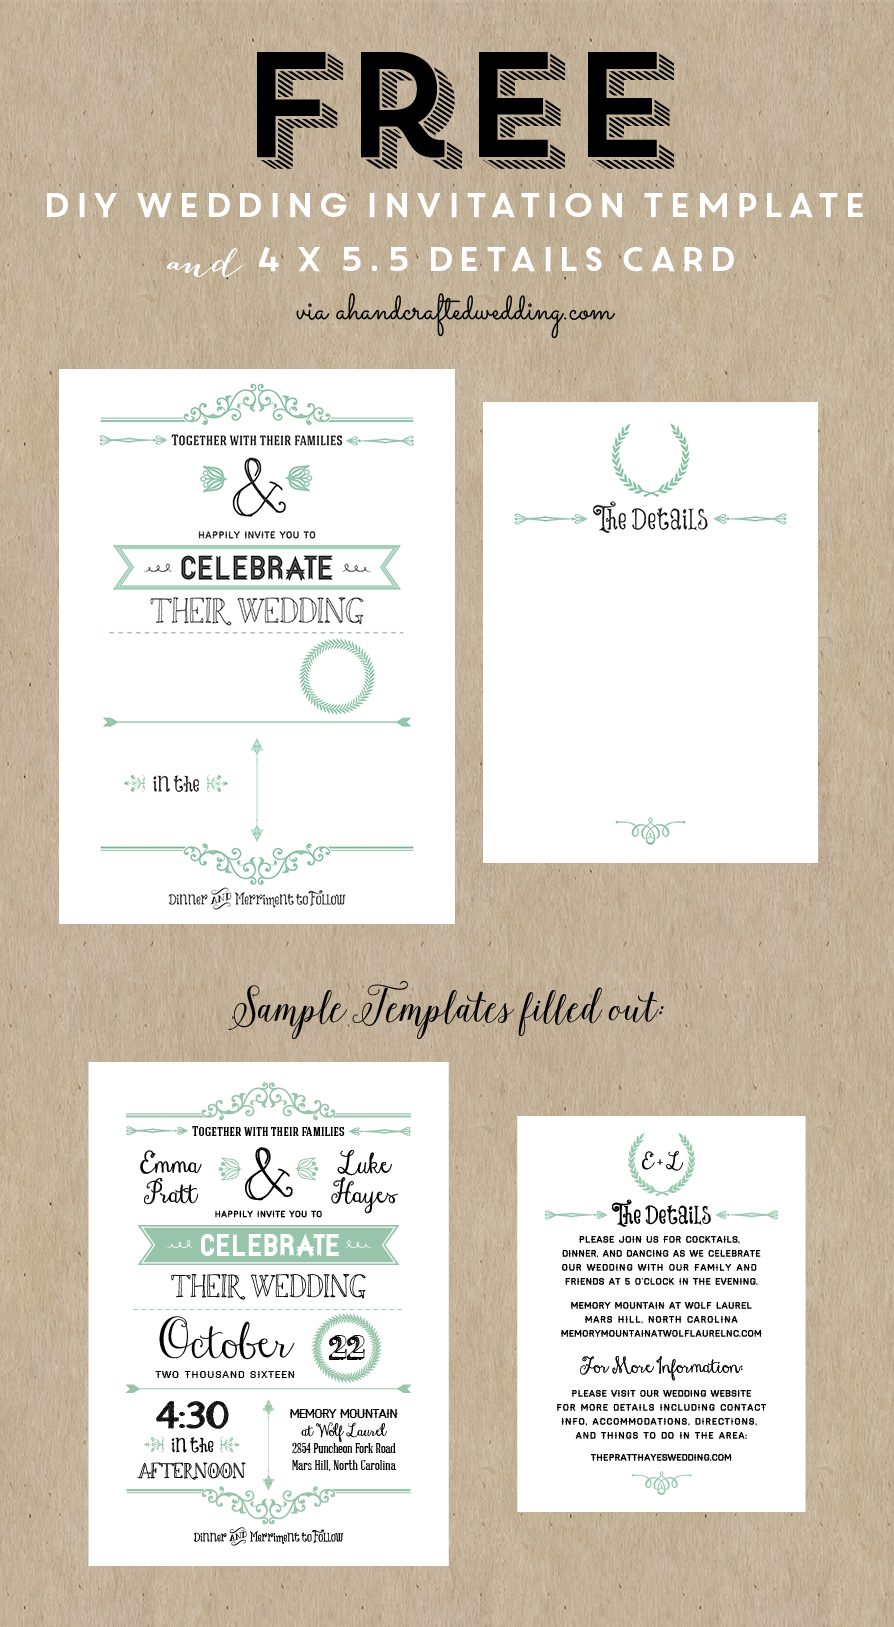 free wedding invitation template via ahandcraftedweddingcom wedding invitation vintageposter